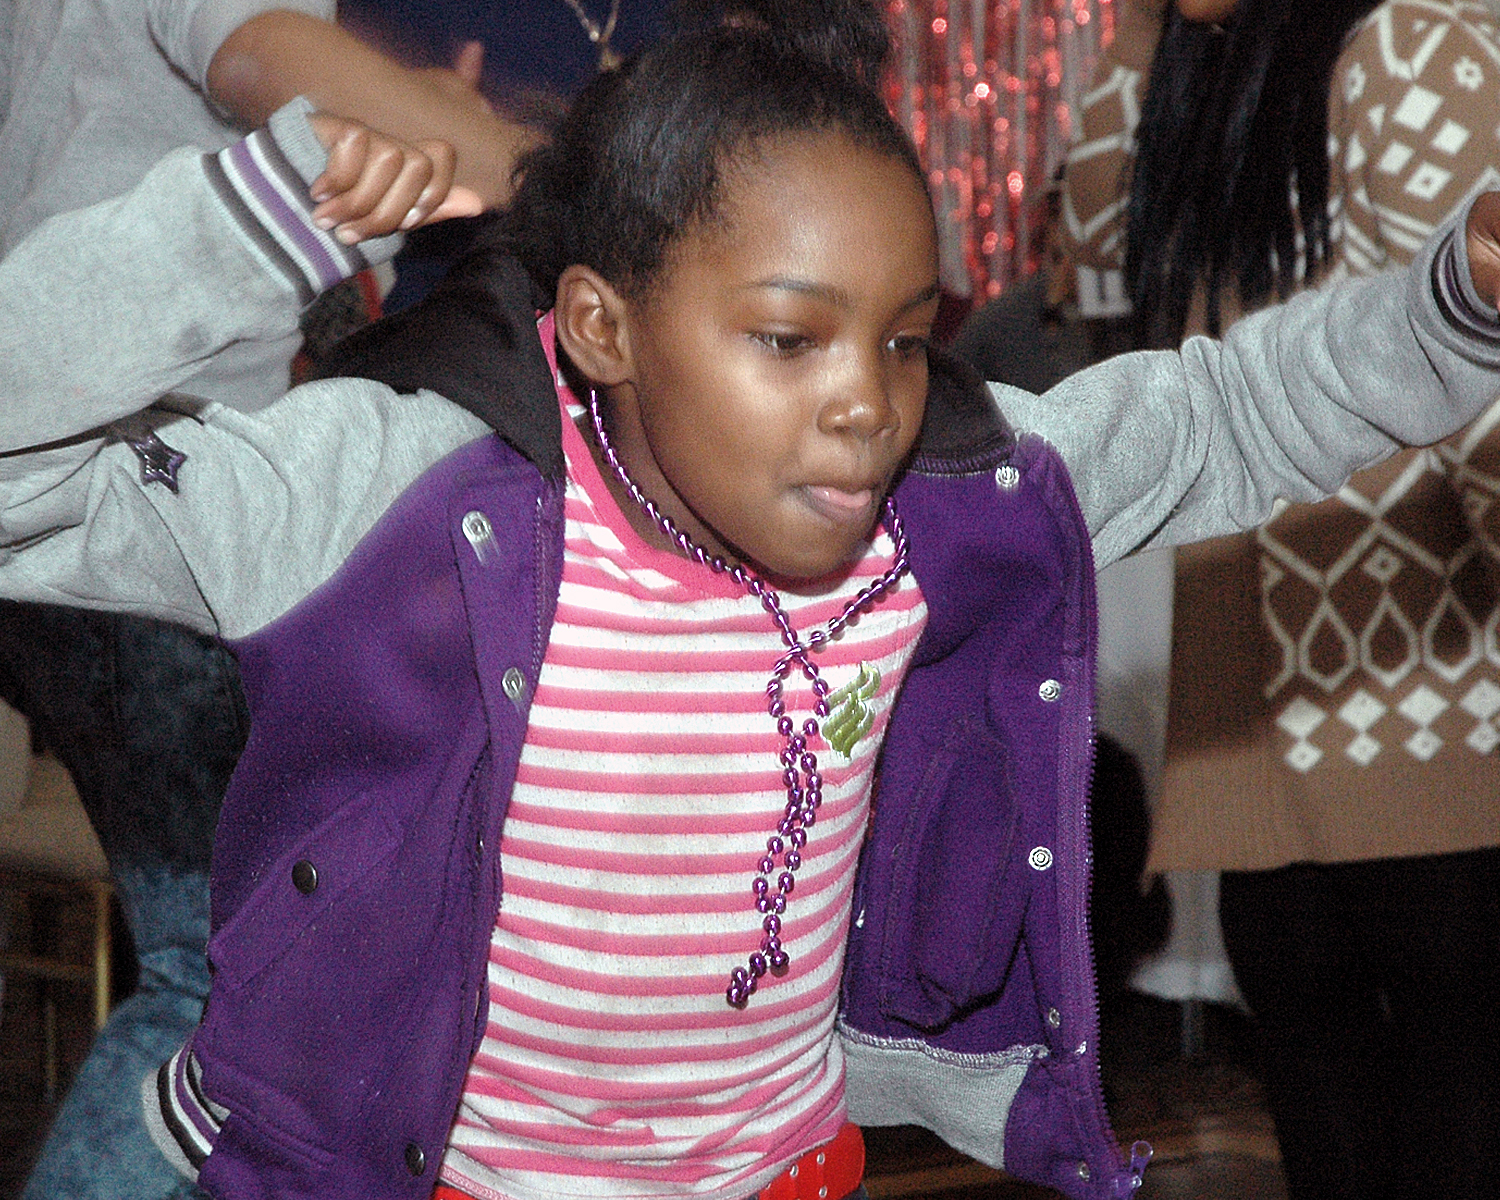 An attendee on the dance floor